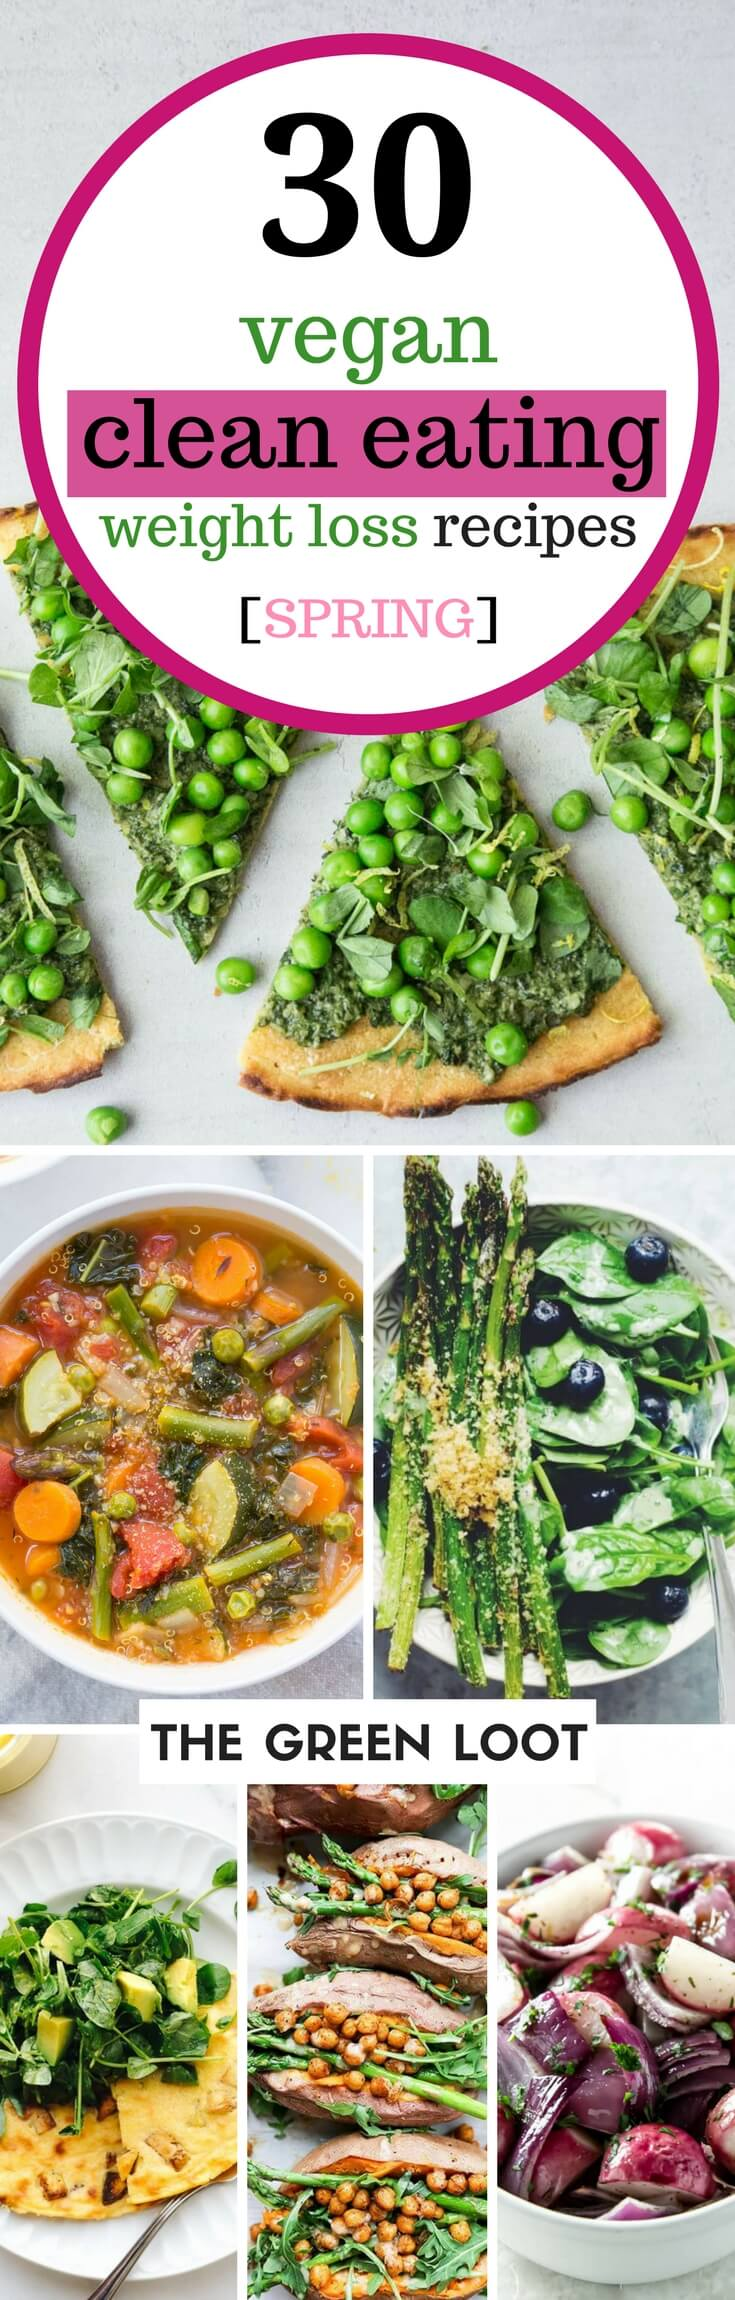 30 fantastic vegan clean eating weight loss recipes for spring the make these winner vegan clean eating weight loss recipes for spring that make amazing seasonal forumfinder Choice Image